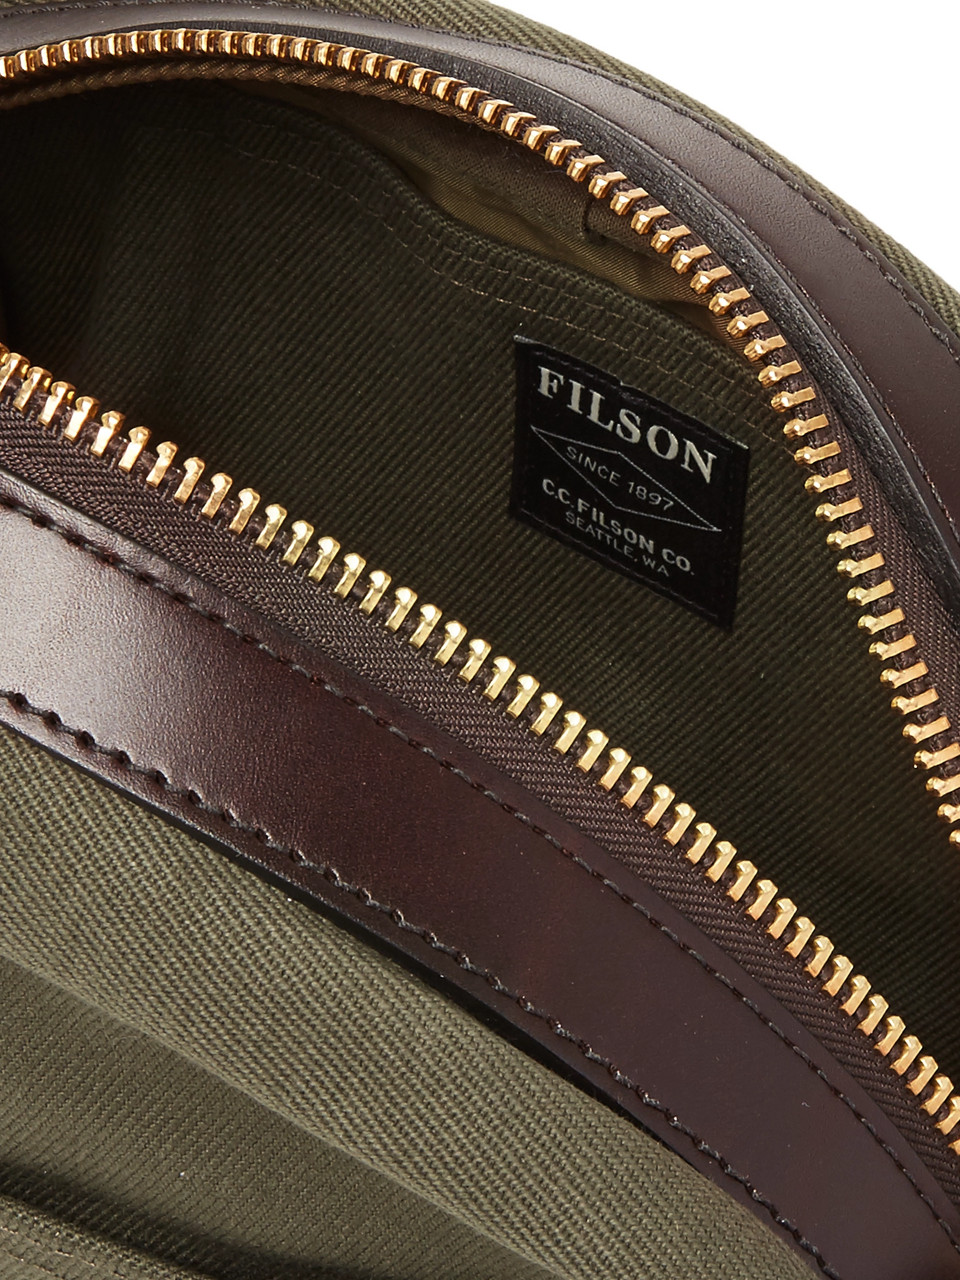 Filson Leather-Trimmed Cotton-Canvas Wash Bag